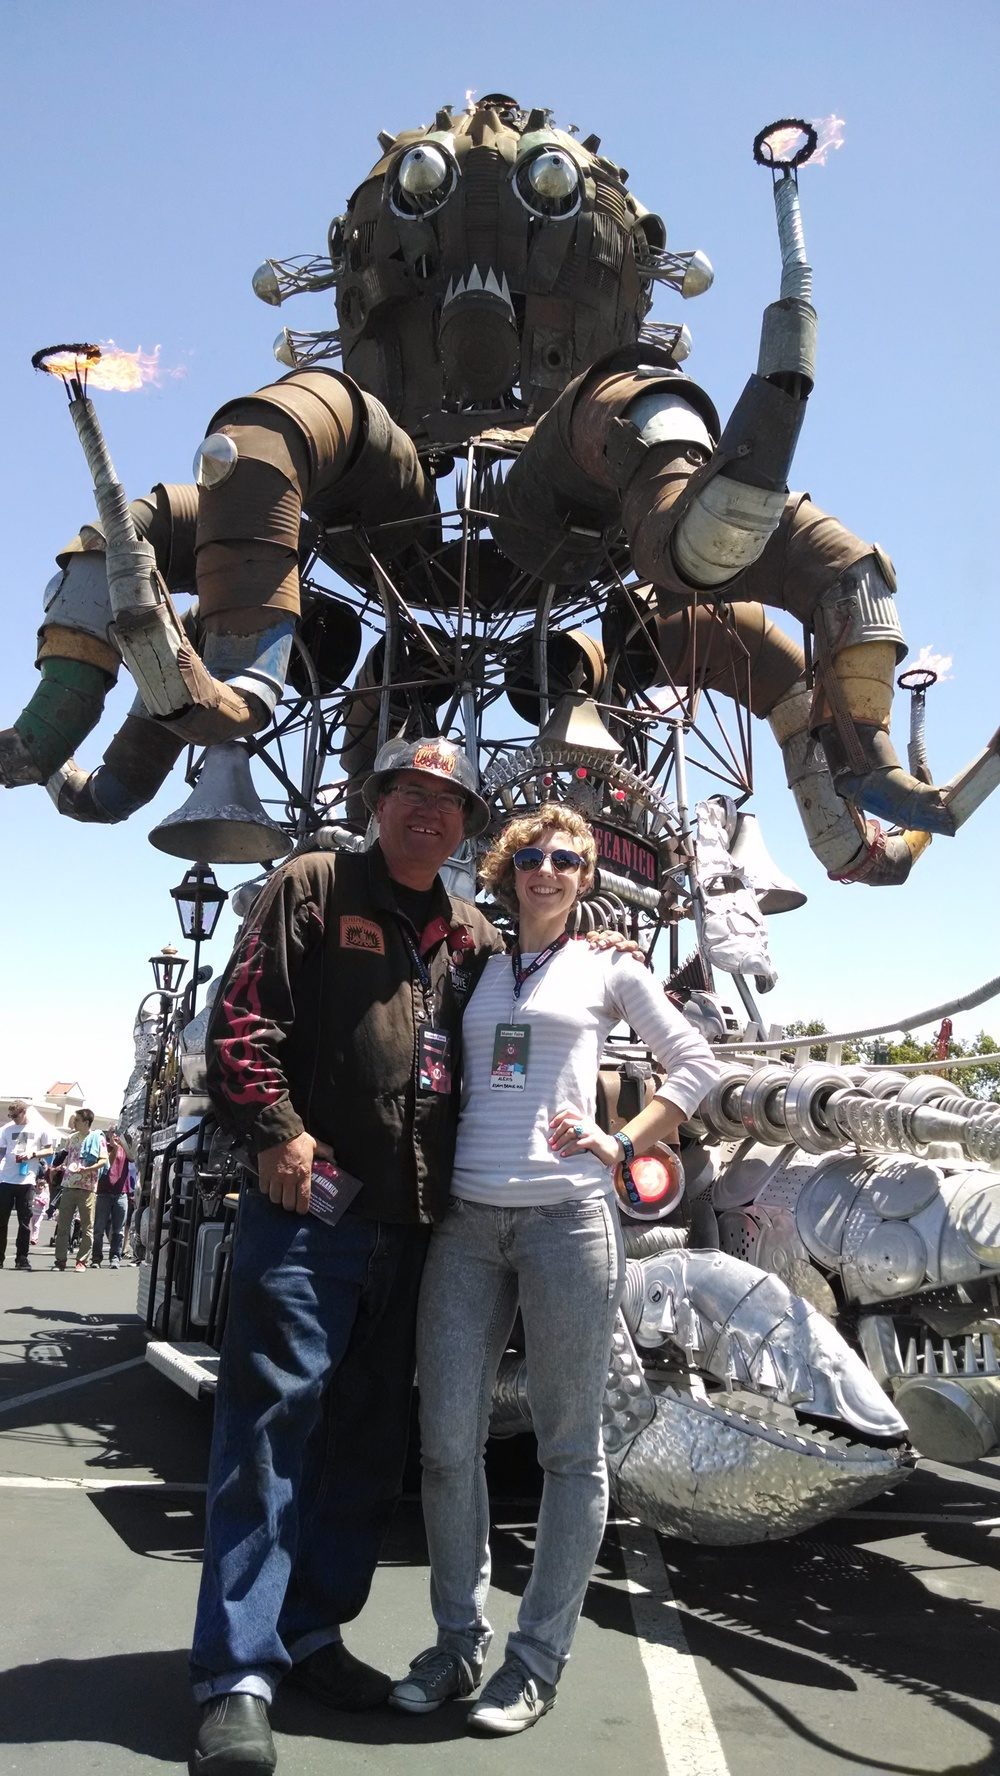 Alexis with Duane Flatmo, one of the co-creators of El Pulpo Mechanico!